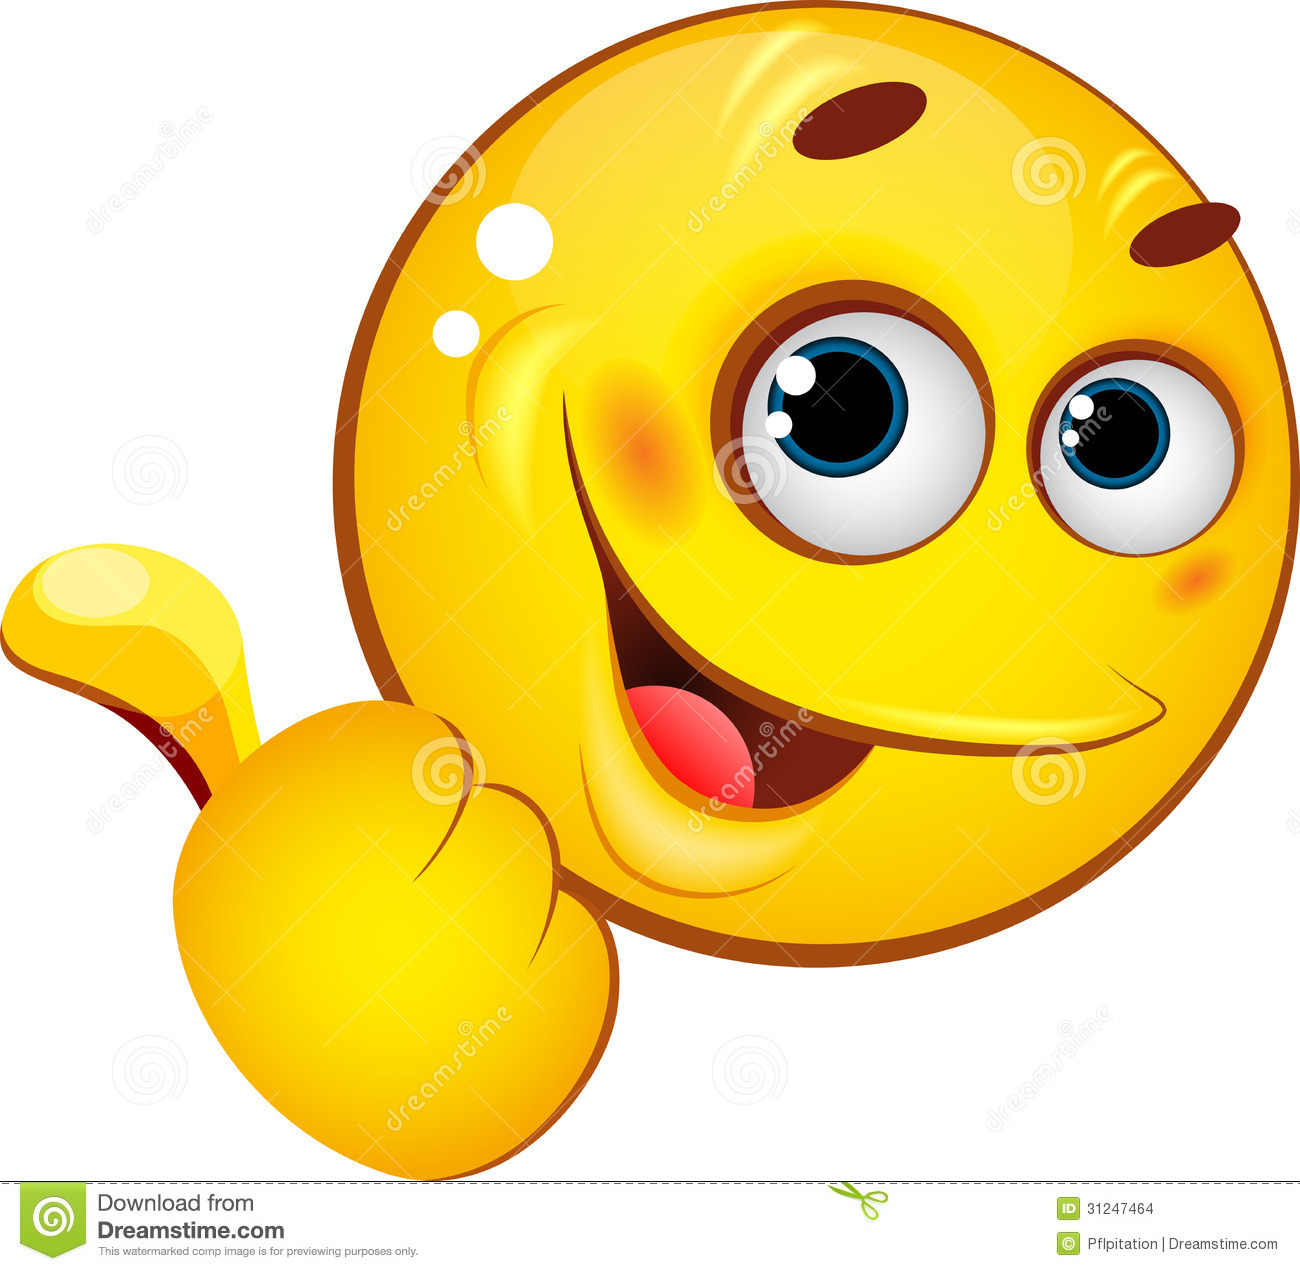 Clipart smiley face thumbs up jpg free library Thumbs Up Smiley Face Clipart - Clipart Kid jpg free library